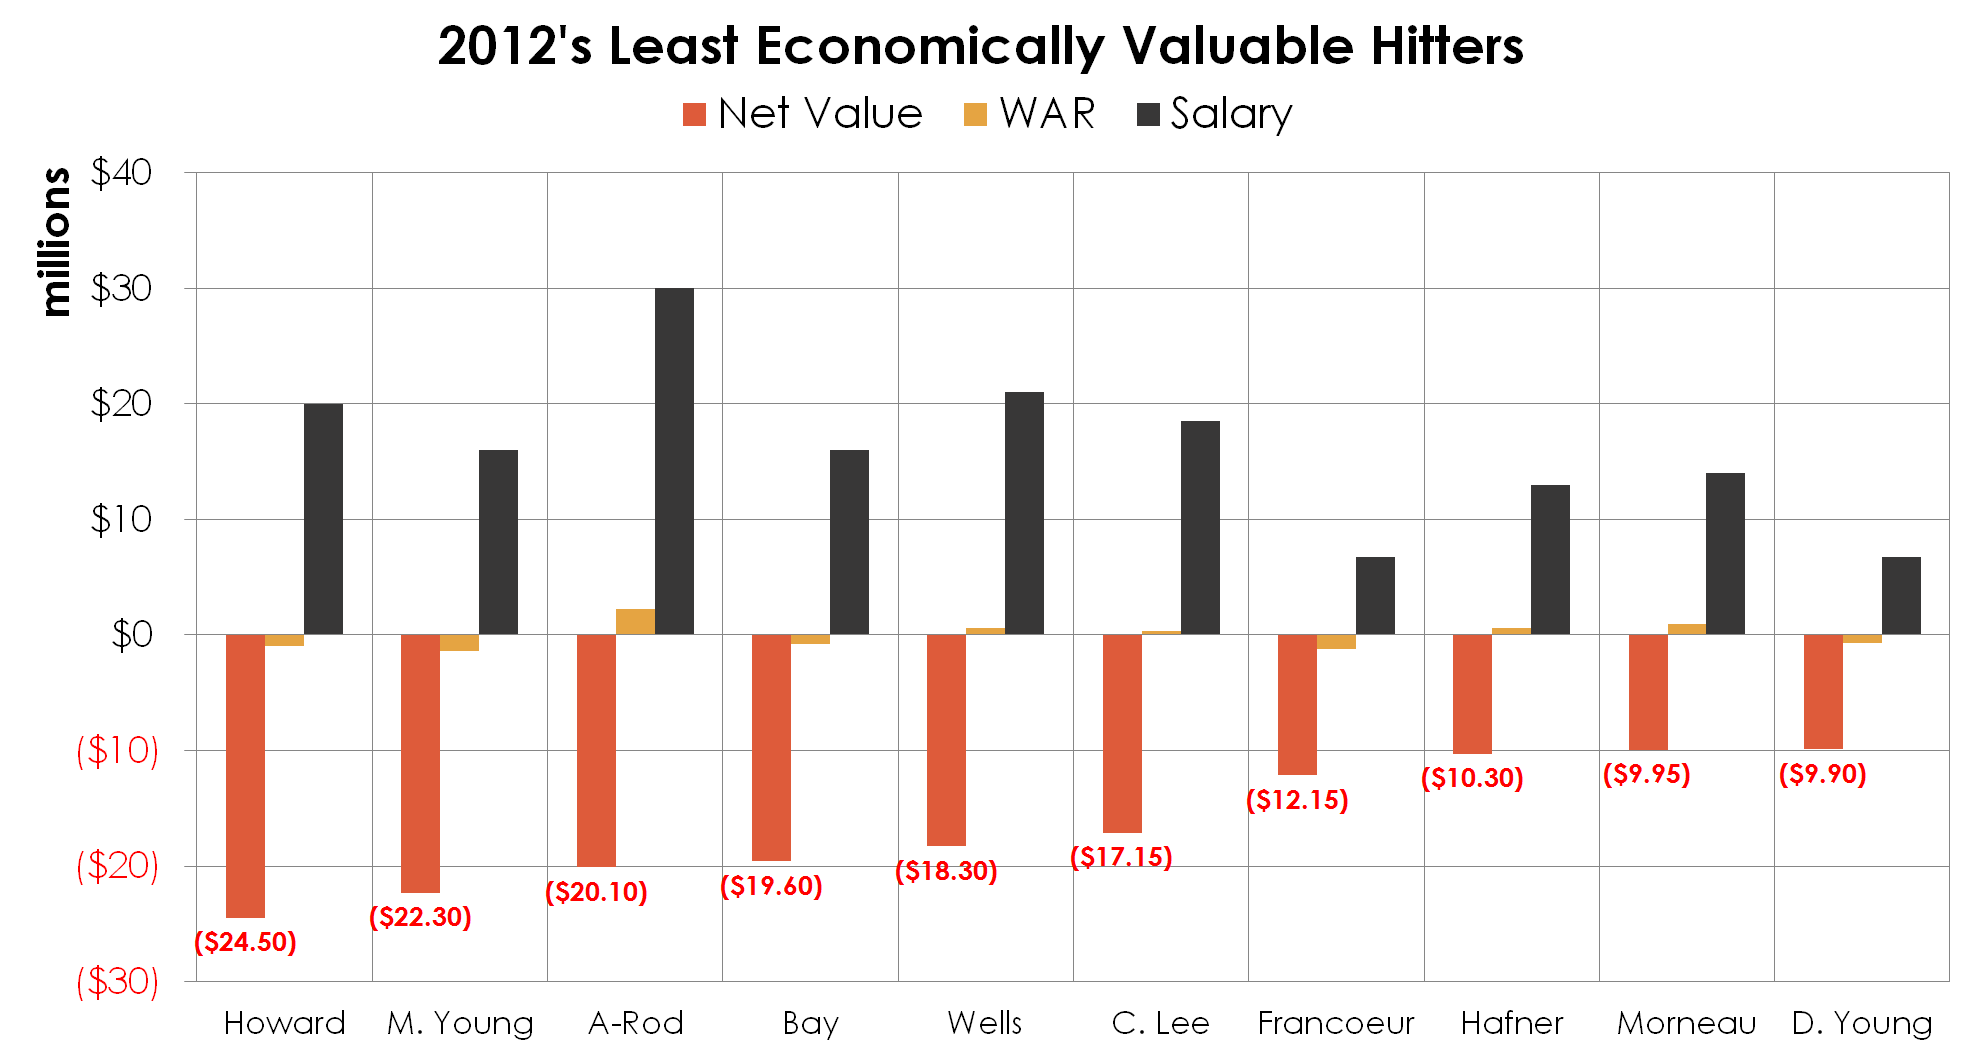 2012_least_valuable_hitters